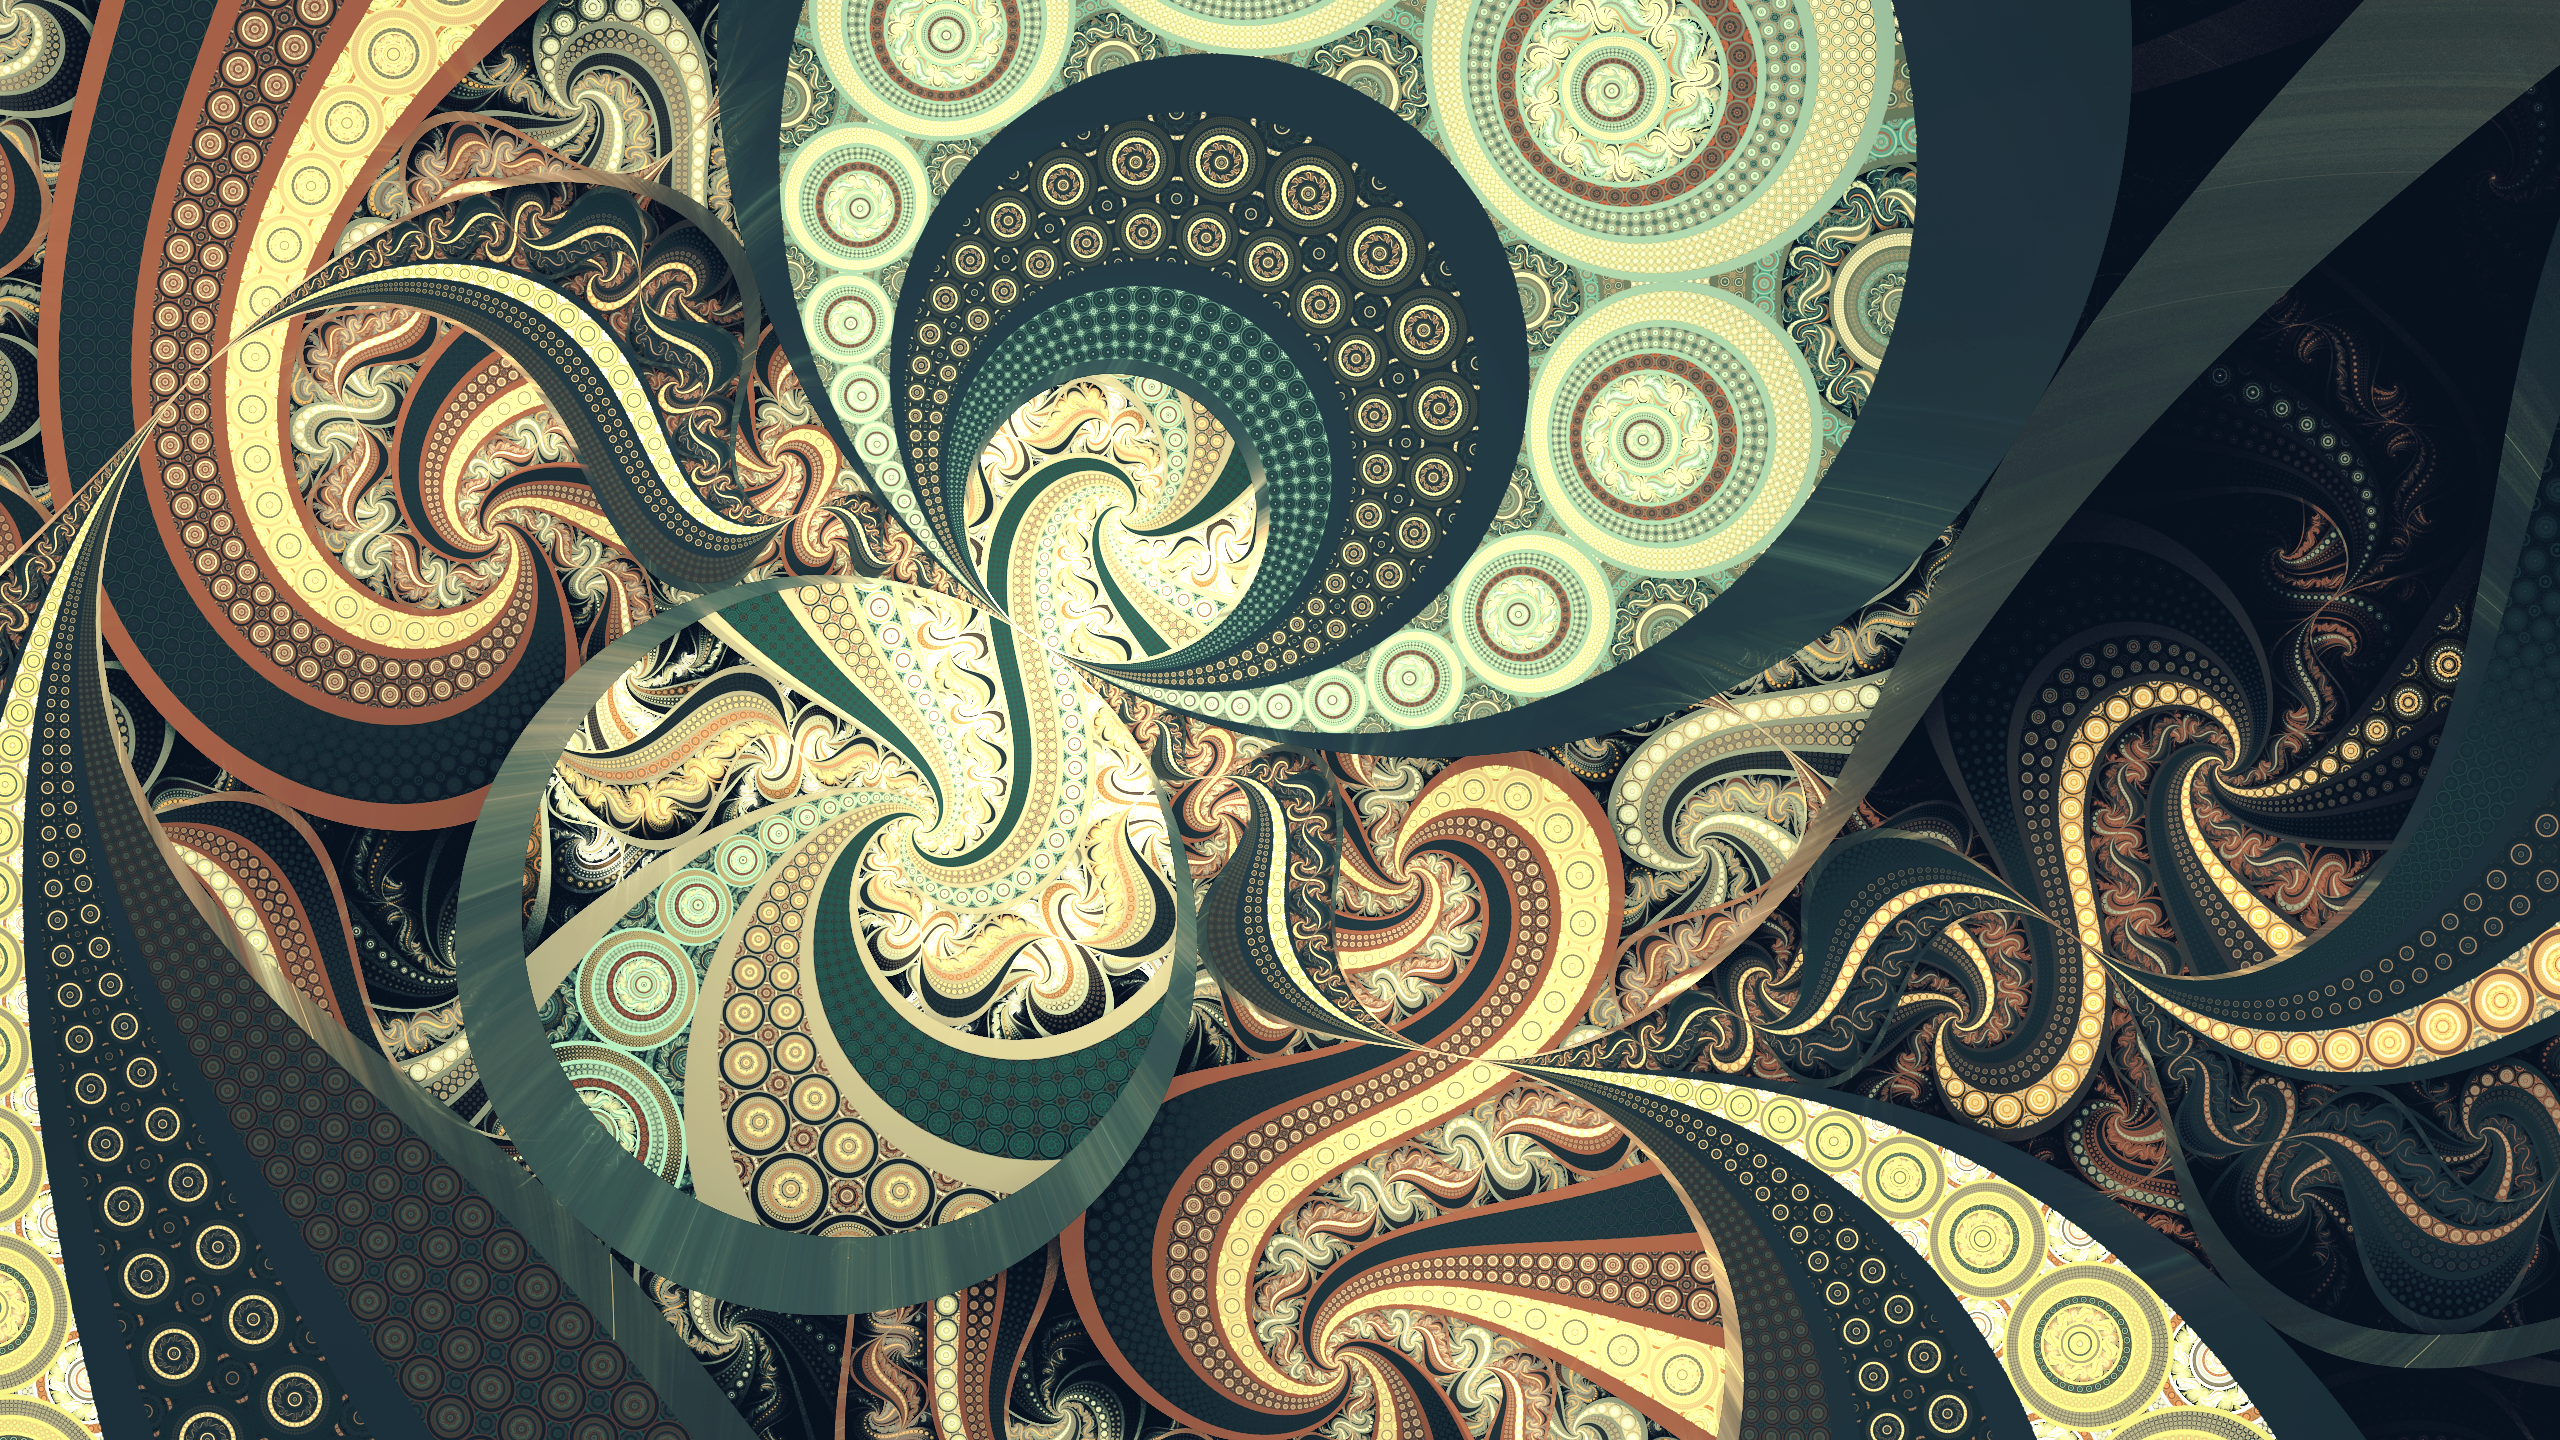 Abstract Fractal 2560x1440